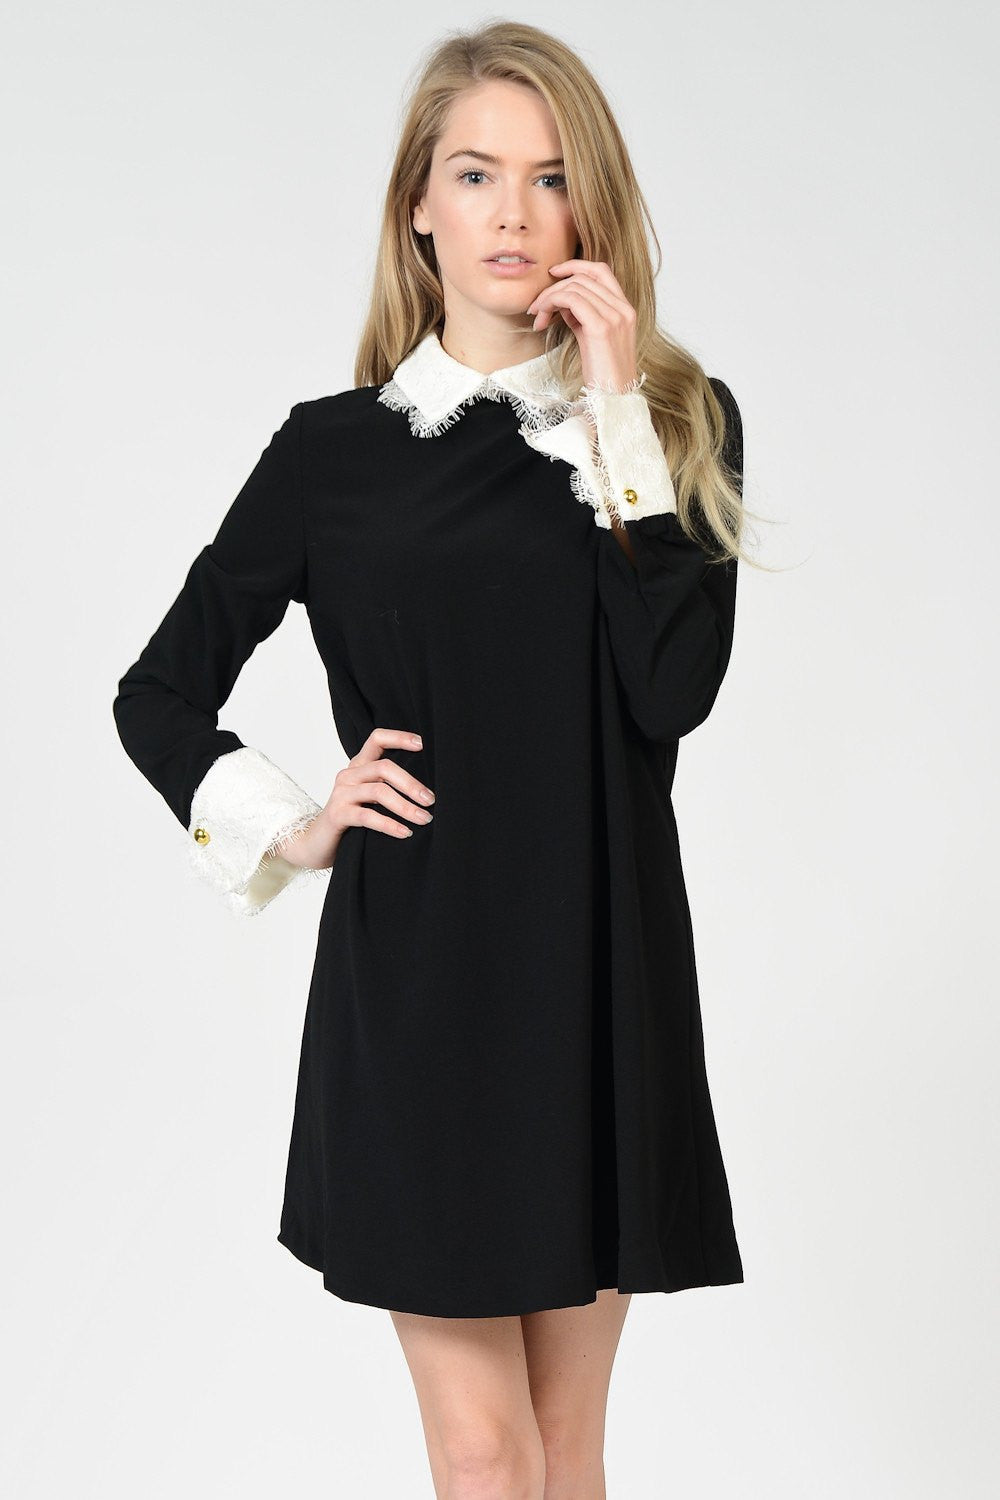 Lace Collar Black Dress